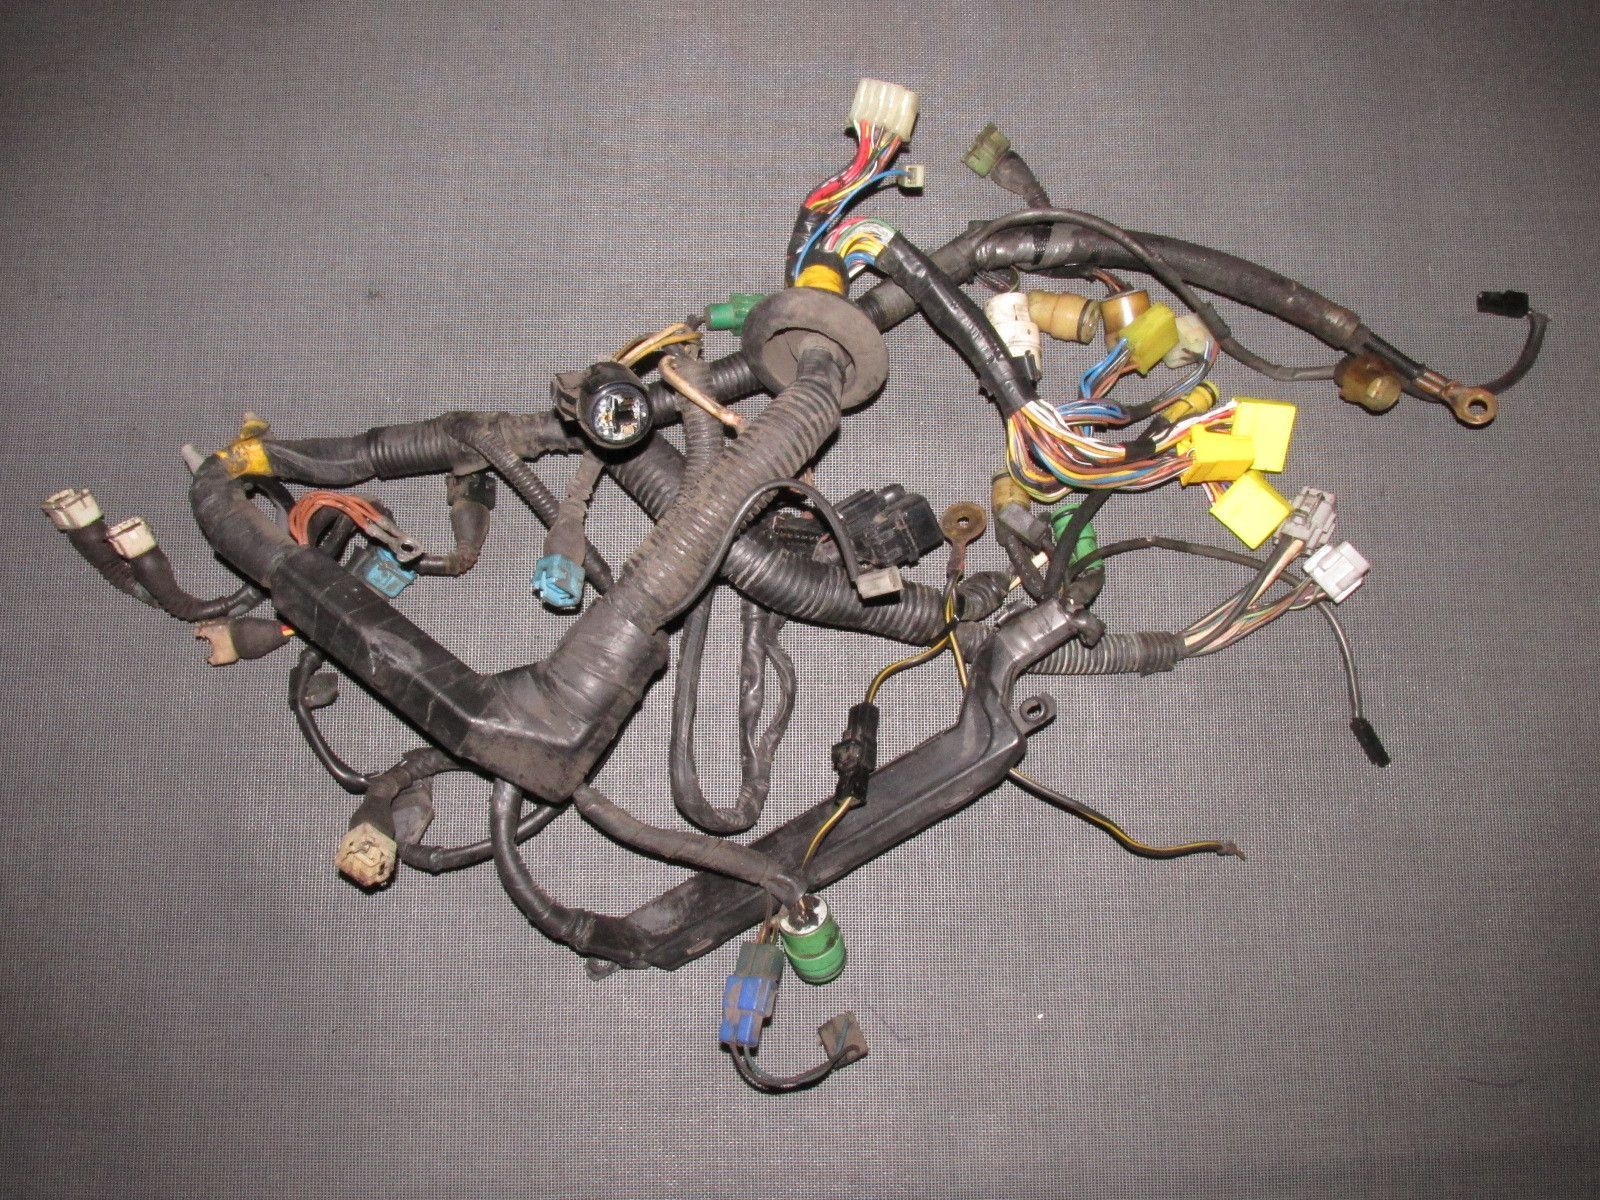 85 86 87 88 89 toyota mr2 oem 4age engine wiring harness cars wiring harness components [ 1600 x 1200 Pixel ]